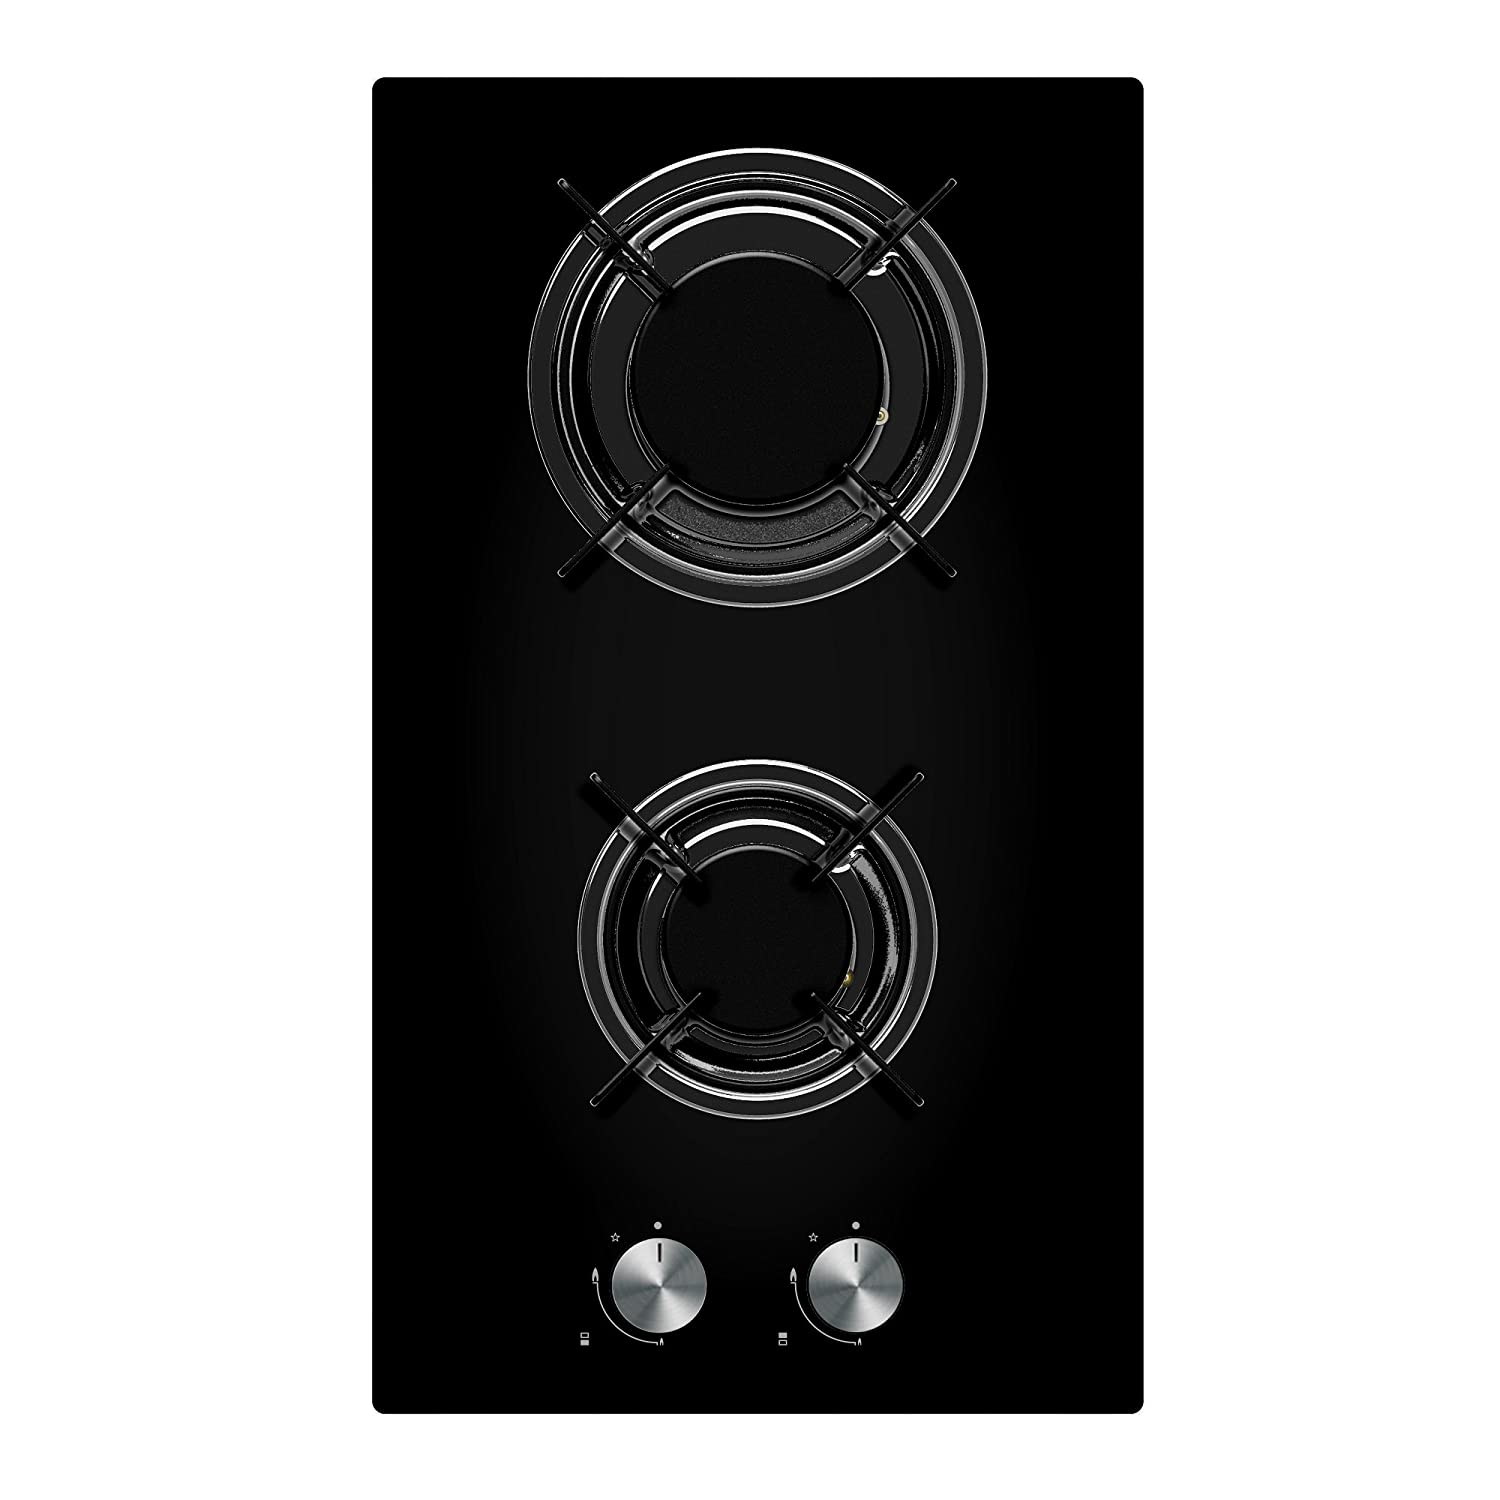 Cookology Gas-on-Glass Domino Hob GGH300BK | 30cm, Built-in, Black Glass & Auto Ignition